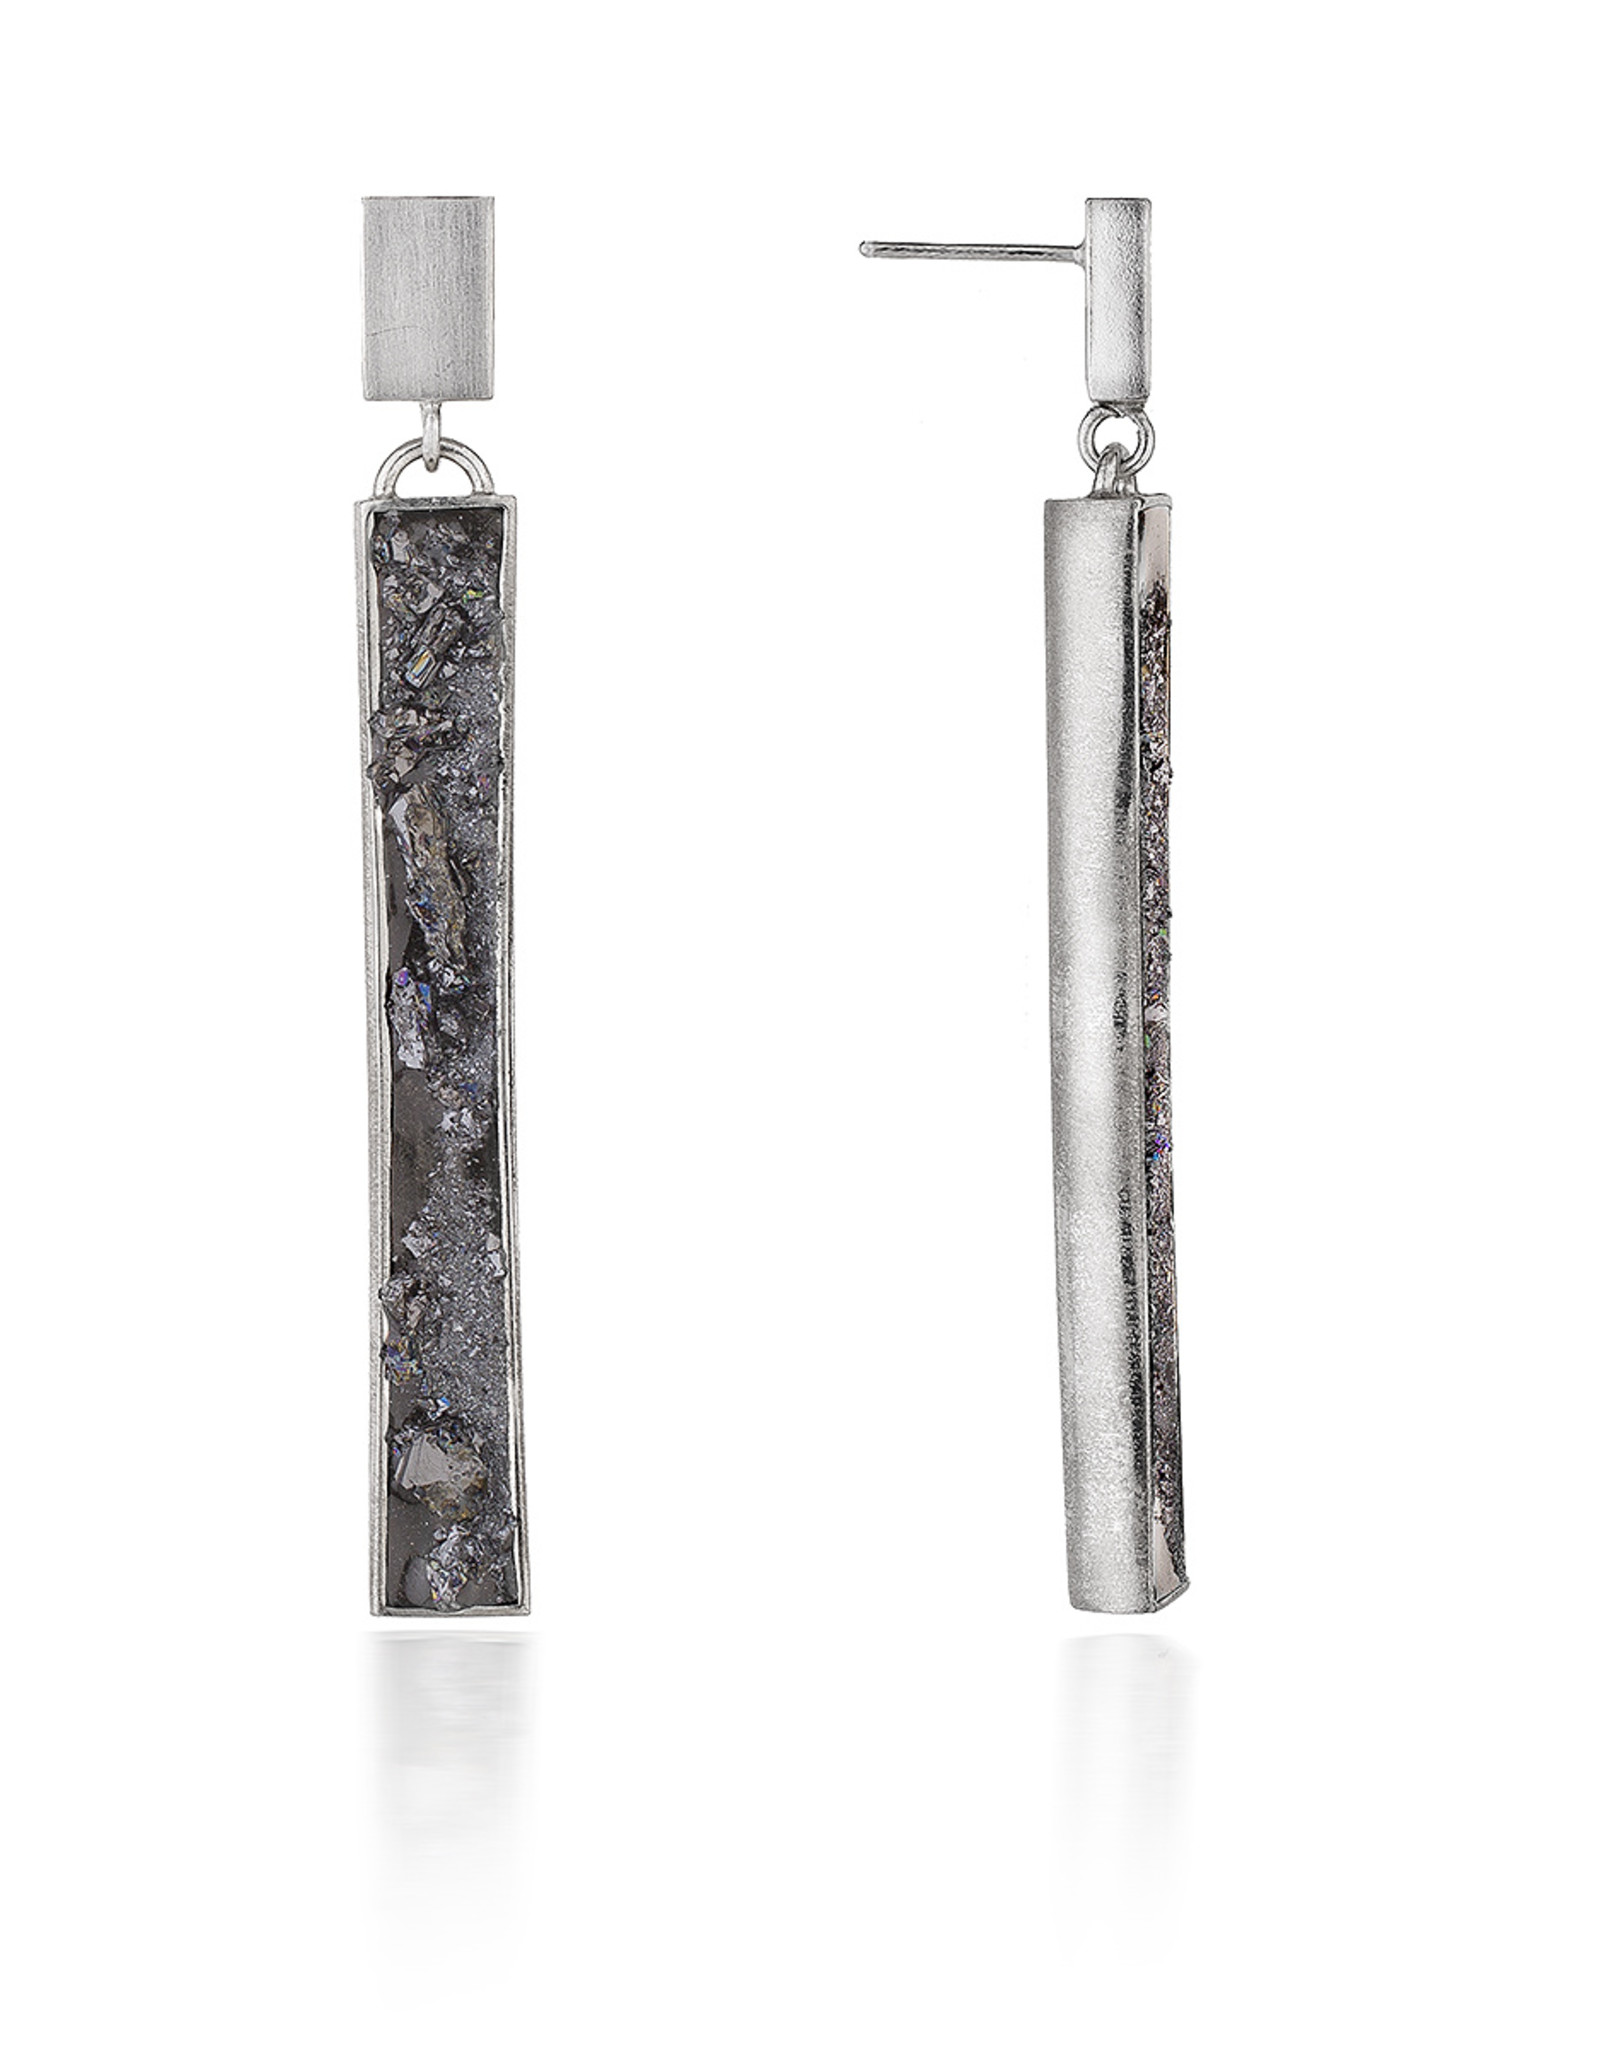 Angela O'Keefe AOK 12 Vertical drop earrings (wide)